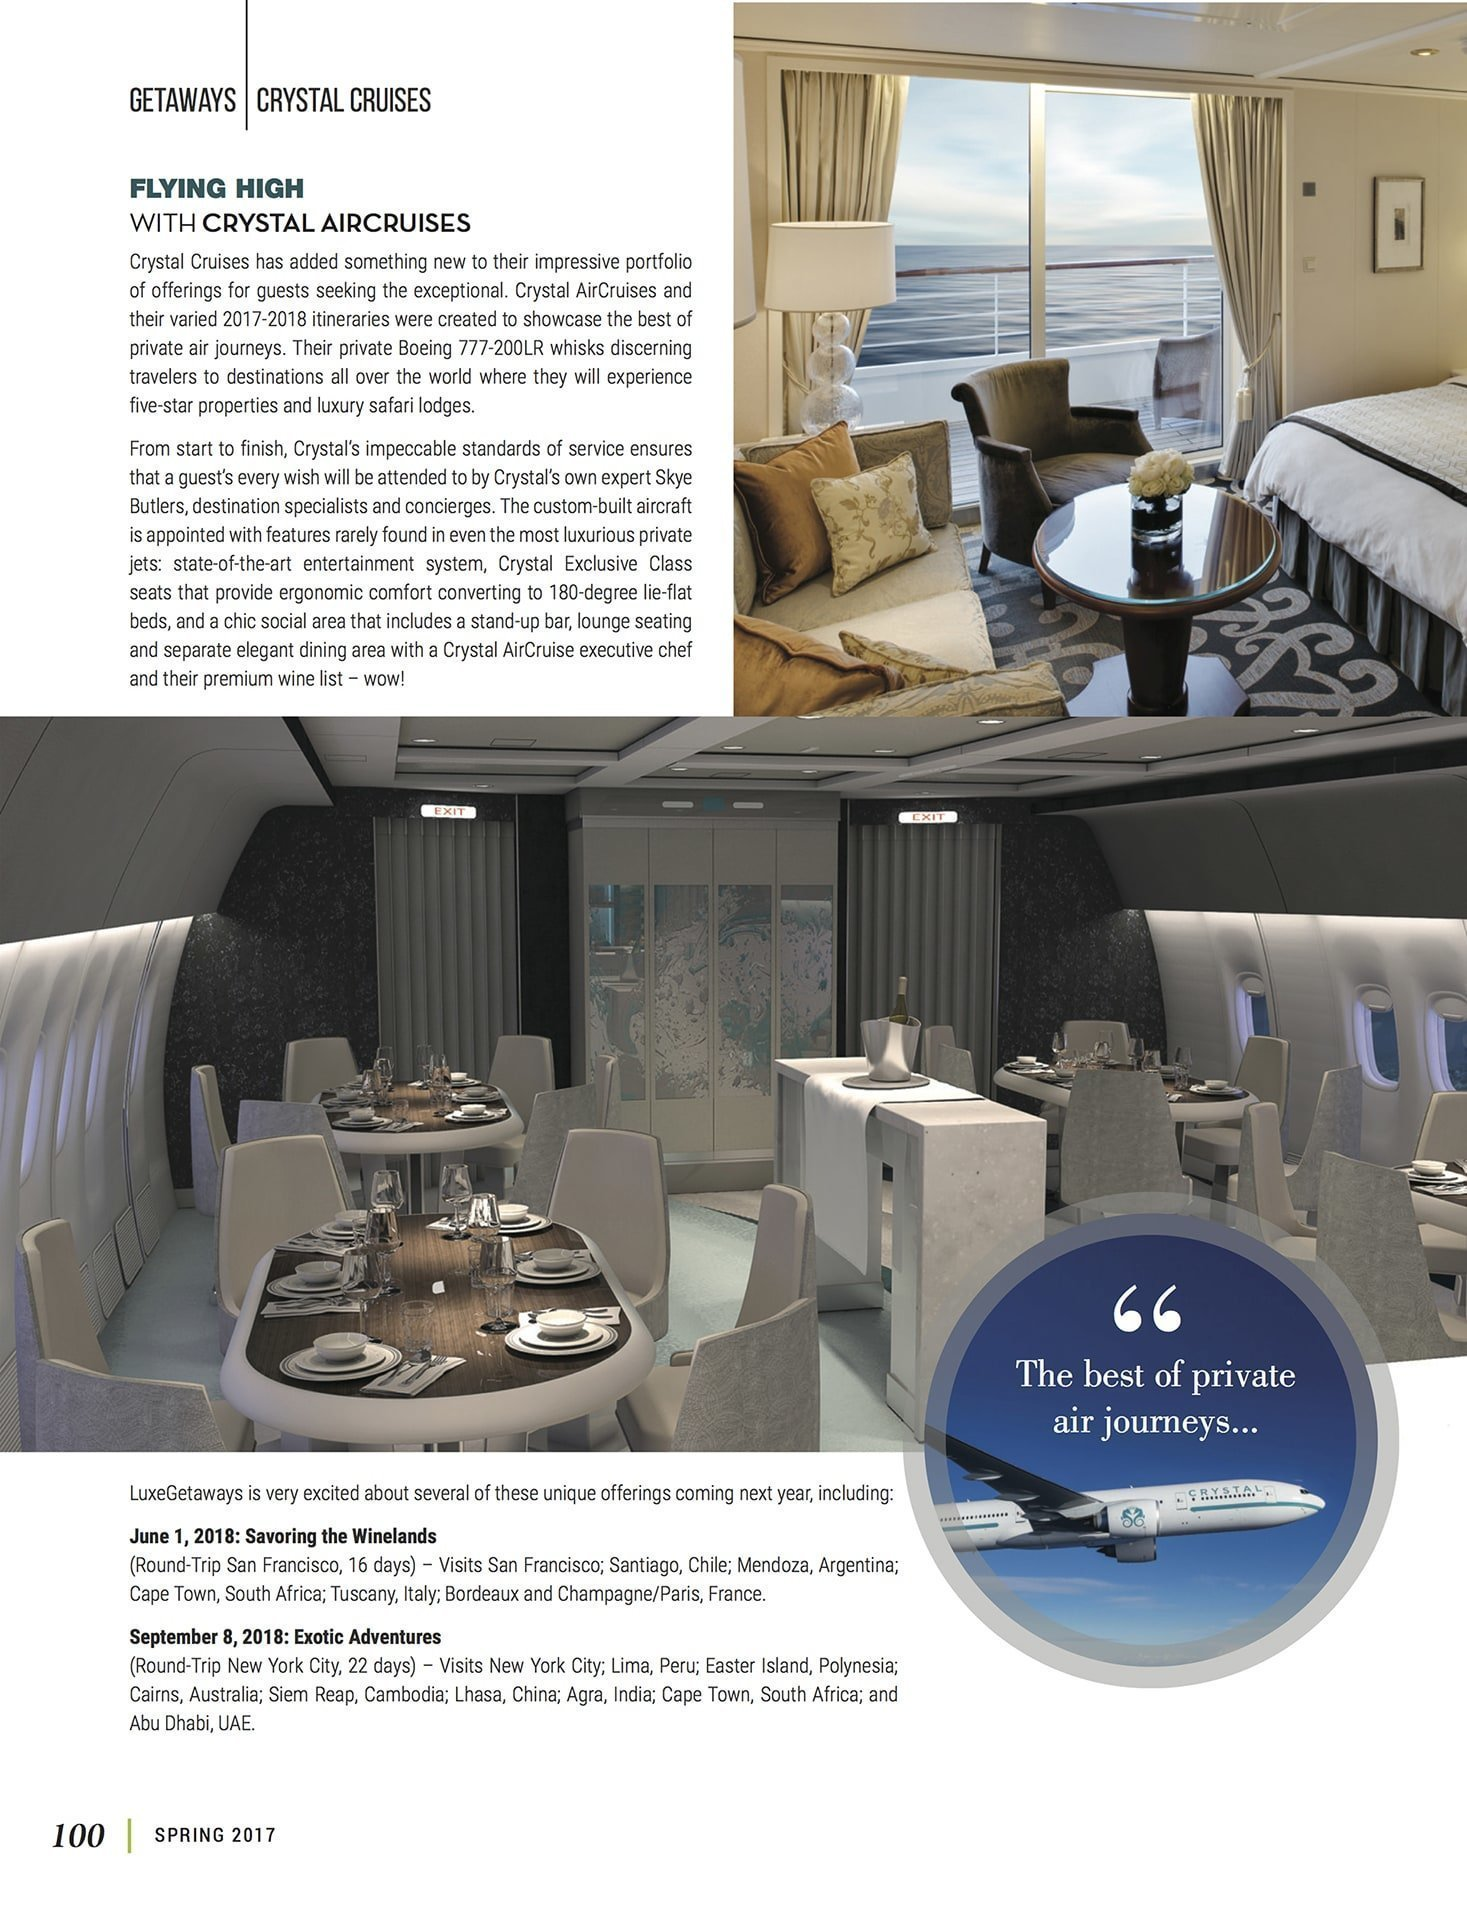 LuxeGetaways - Luxury Travel - Luxury Travel Magazine - Crystal Cruises - private jet travel - river cruise - luxury cruise - crystal aircruises